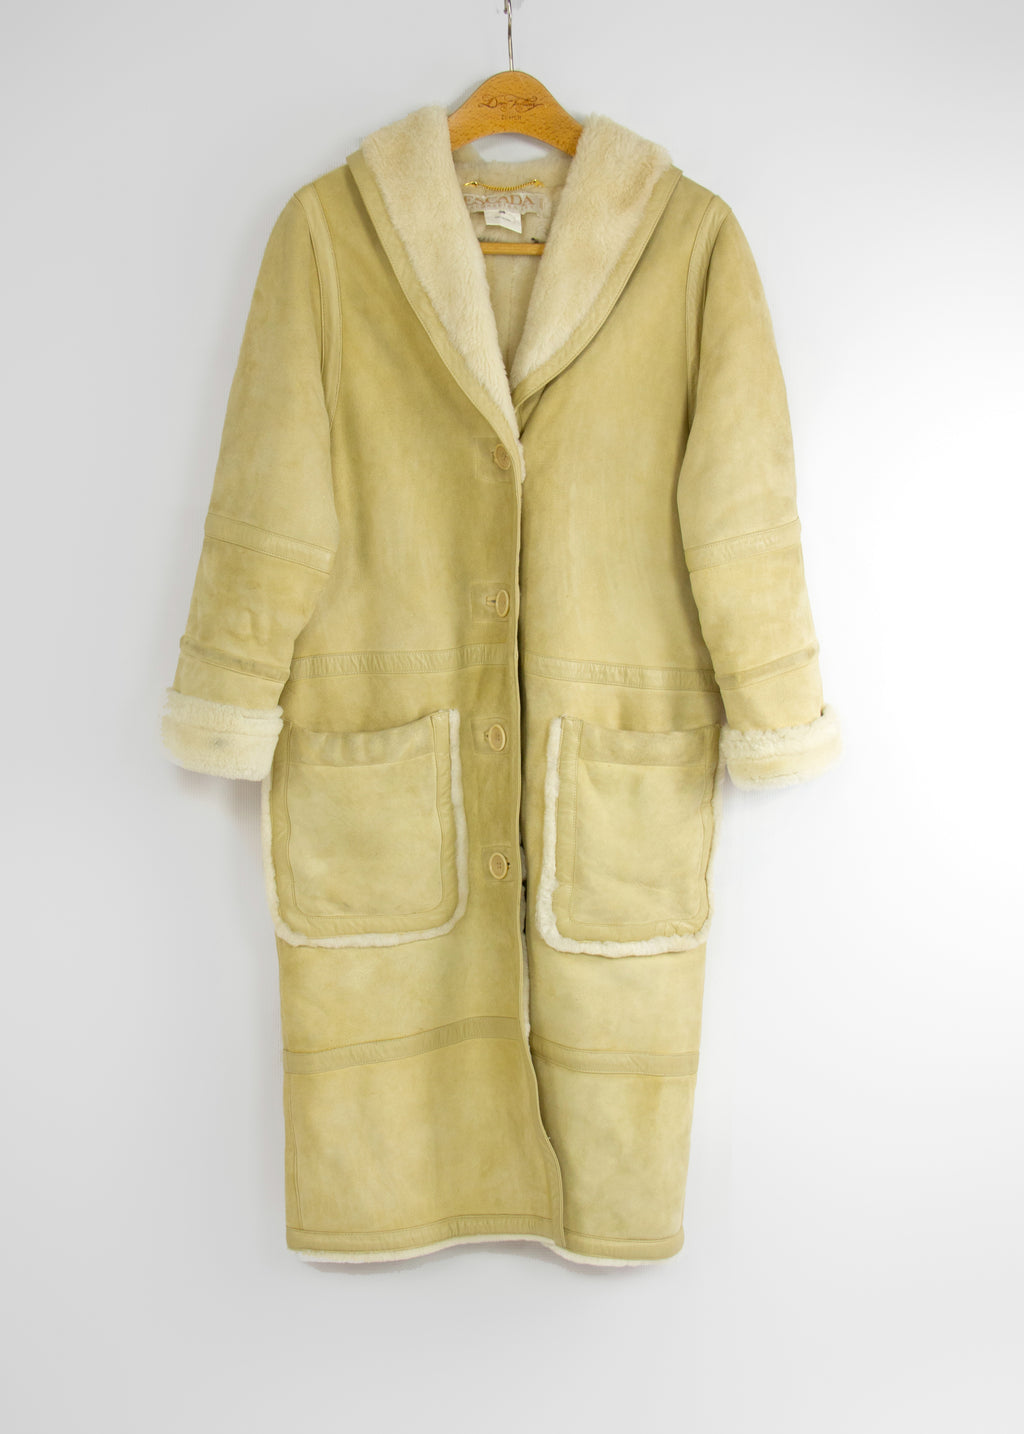 ESCADA Vintage Shearling Lambskin Coat, SIZE M - secondfirst